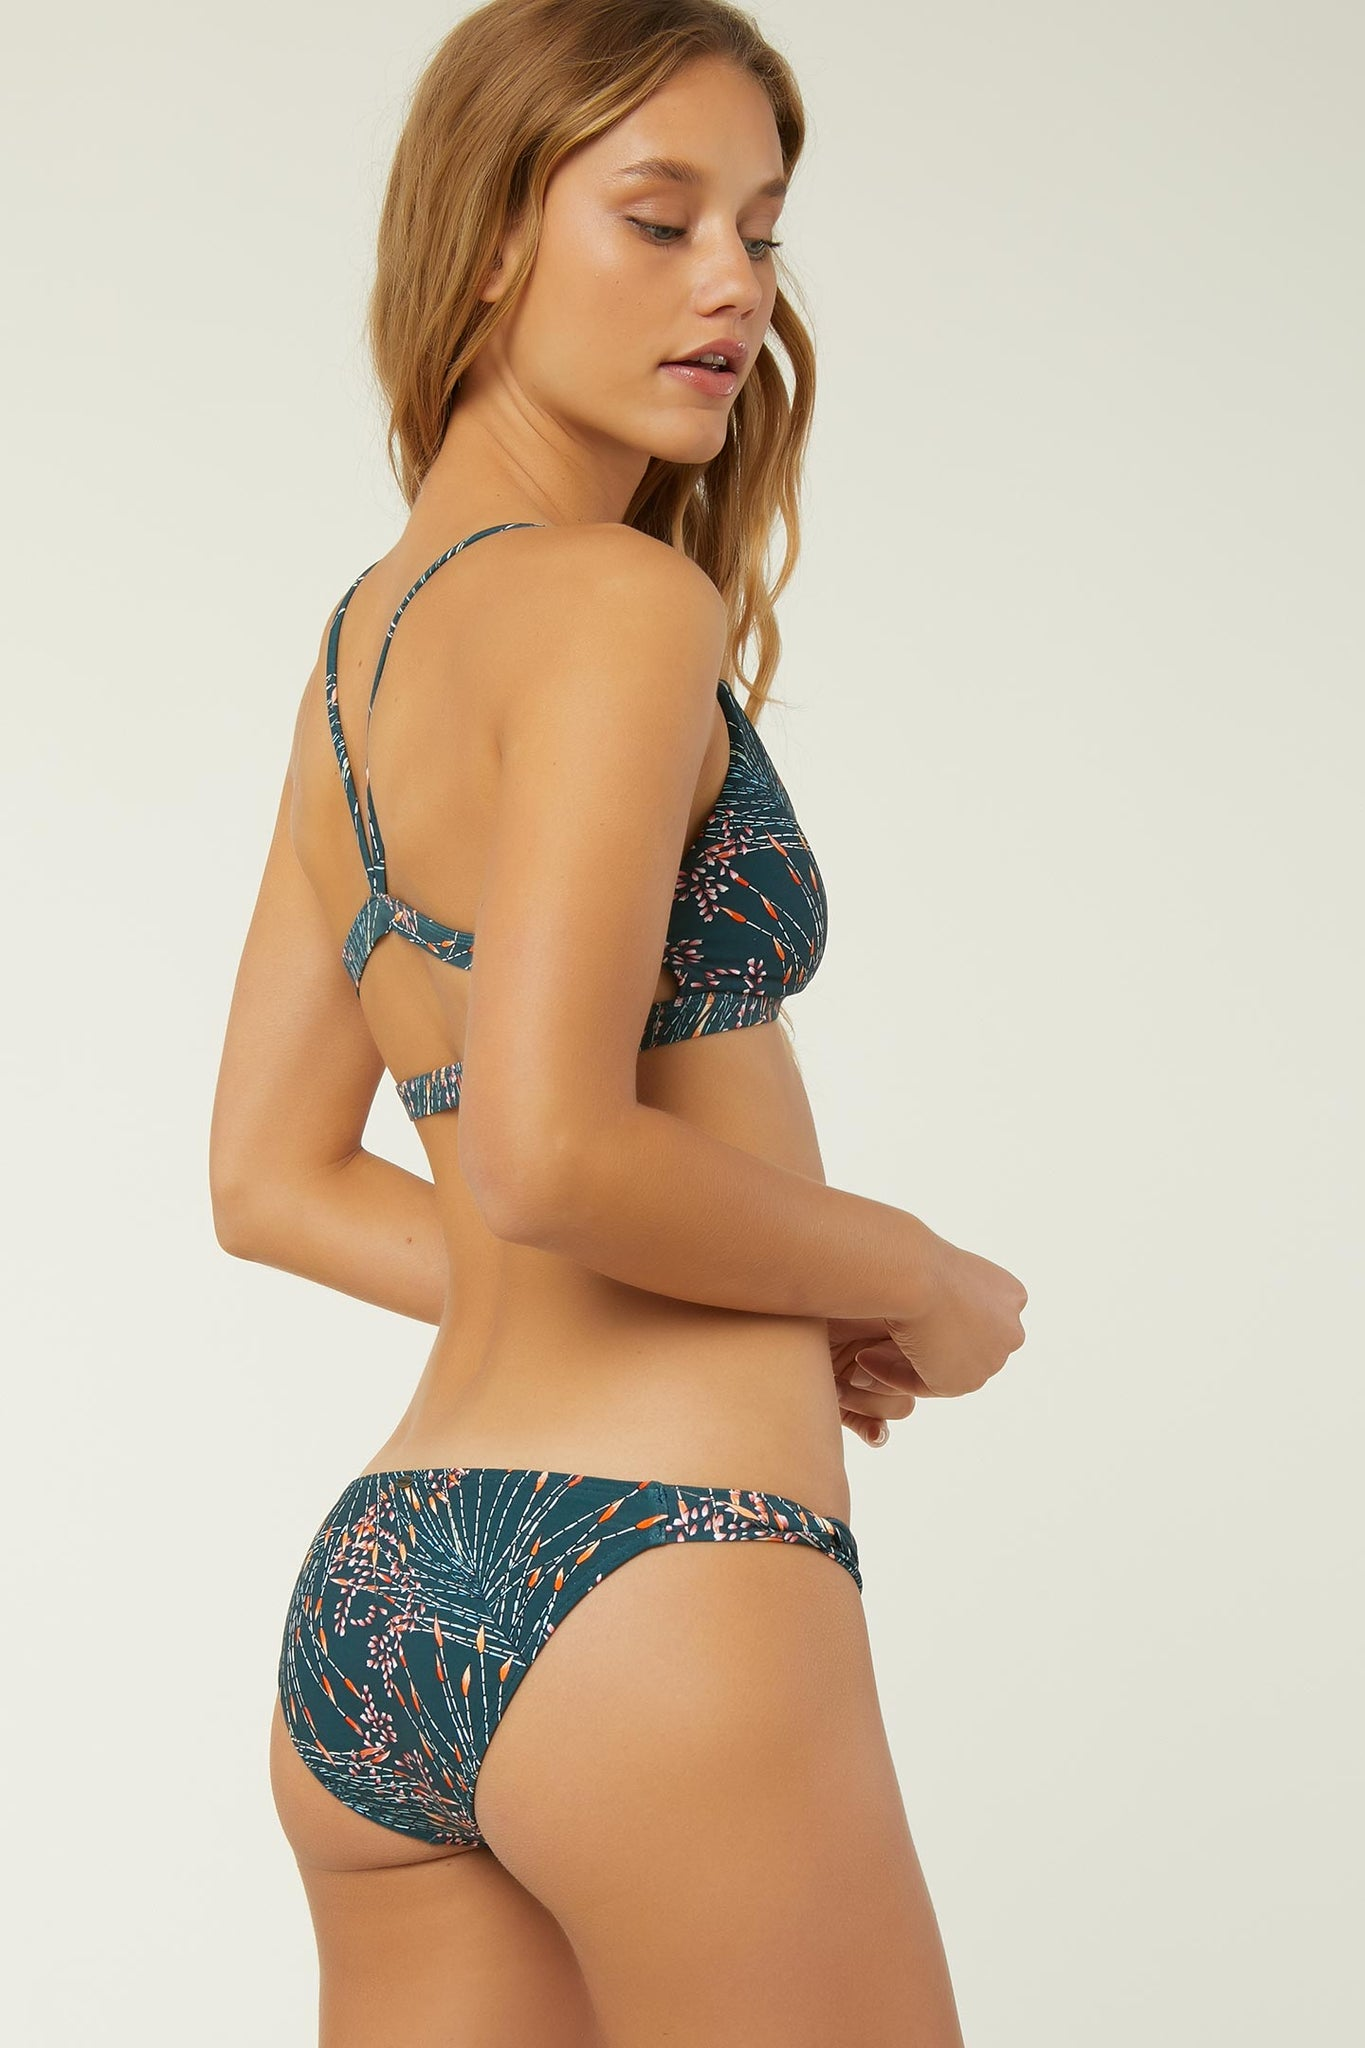 Prism Loop Bottoms - Pacific Teal | O'Neill